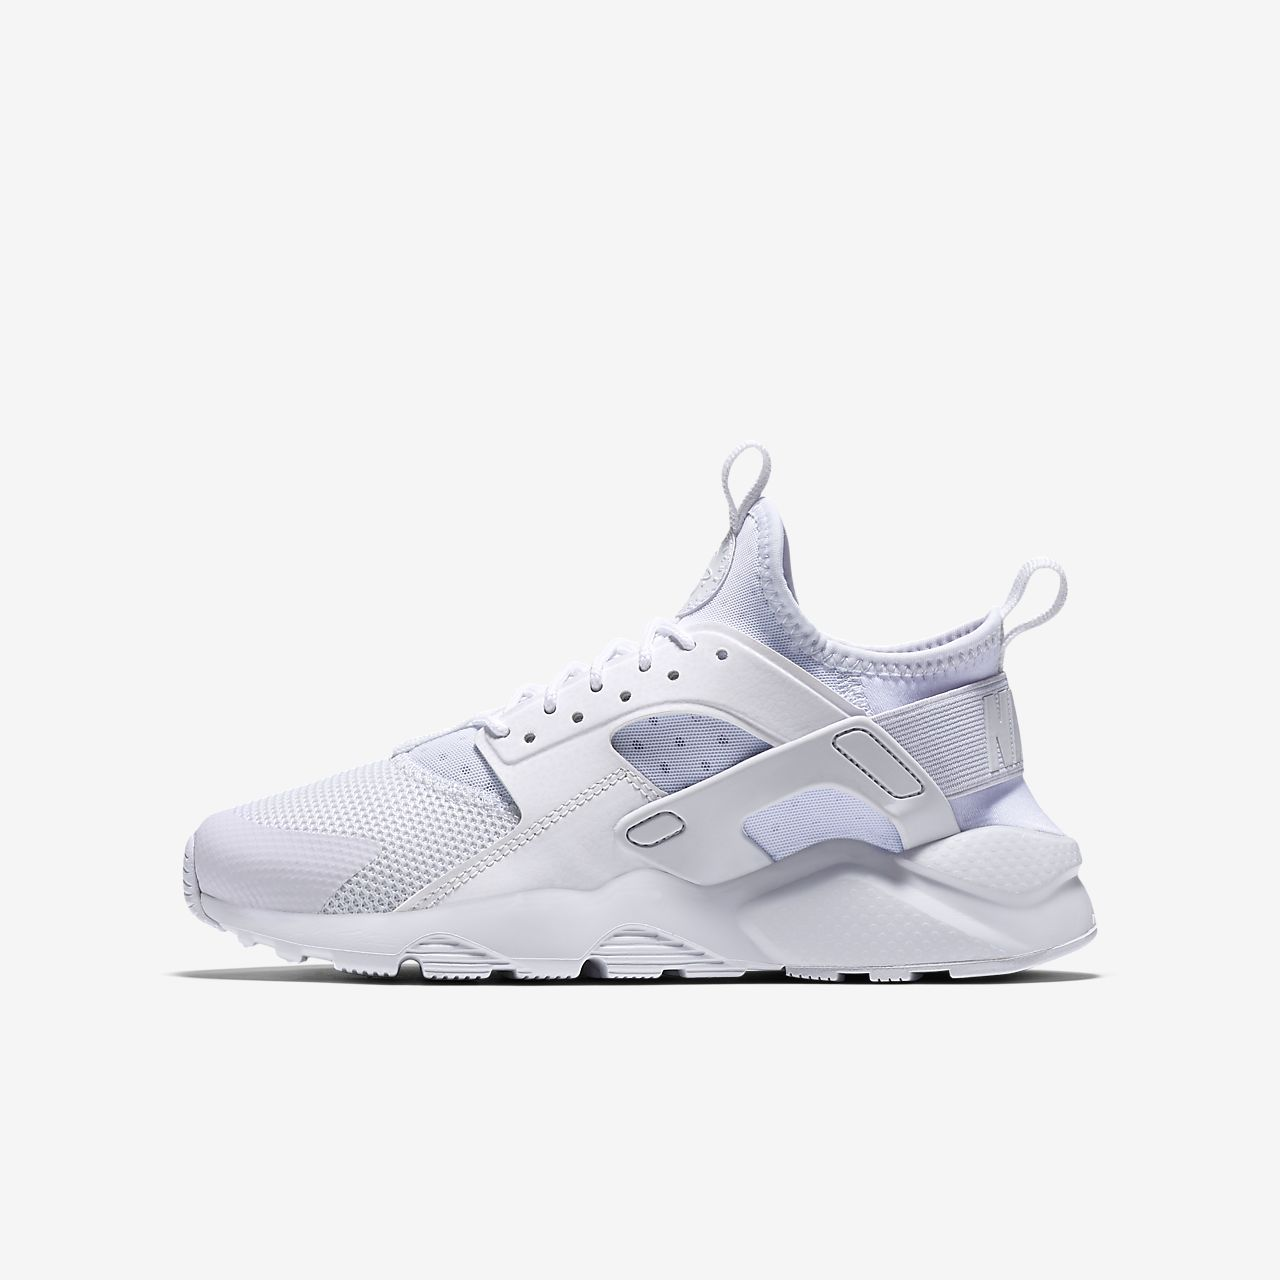 10801c5d17f9 Nike Air Huarache Ultra Older Kids  Shoe. Nike.com CA